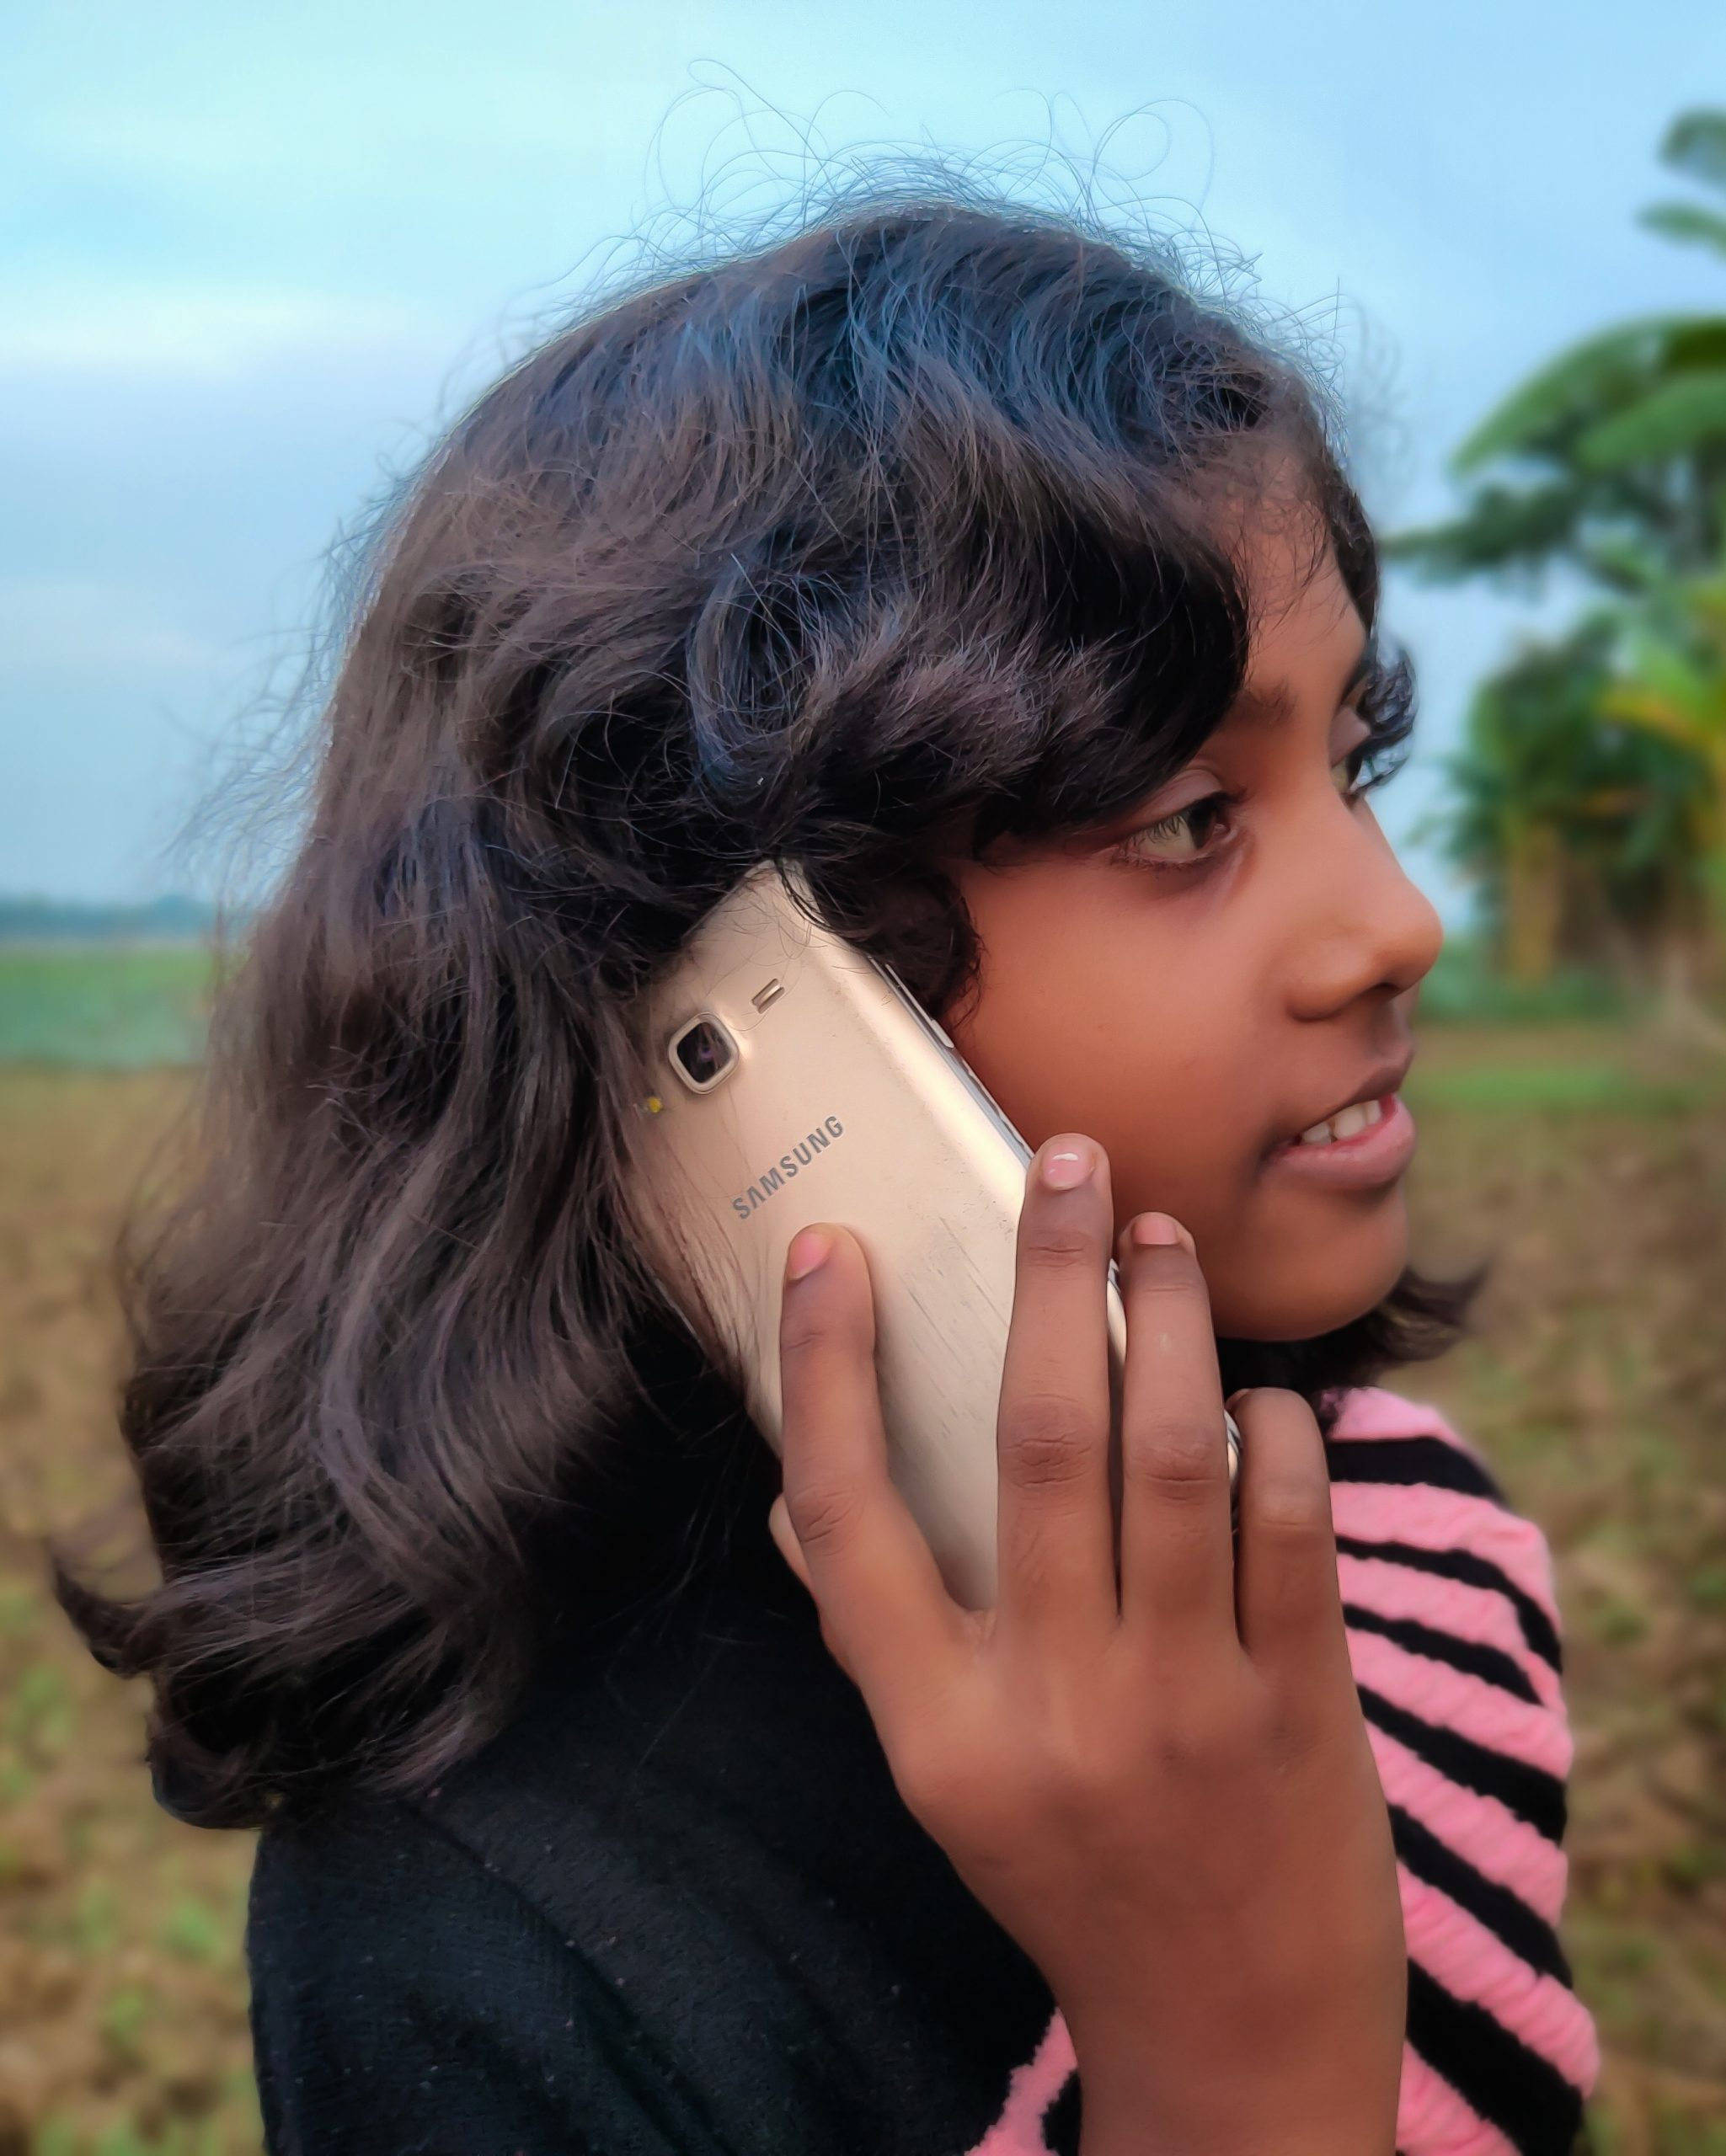 A girl is using Samsung mobile